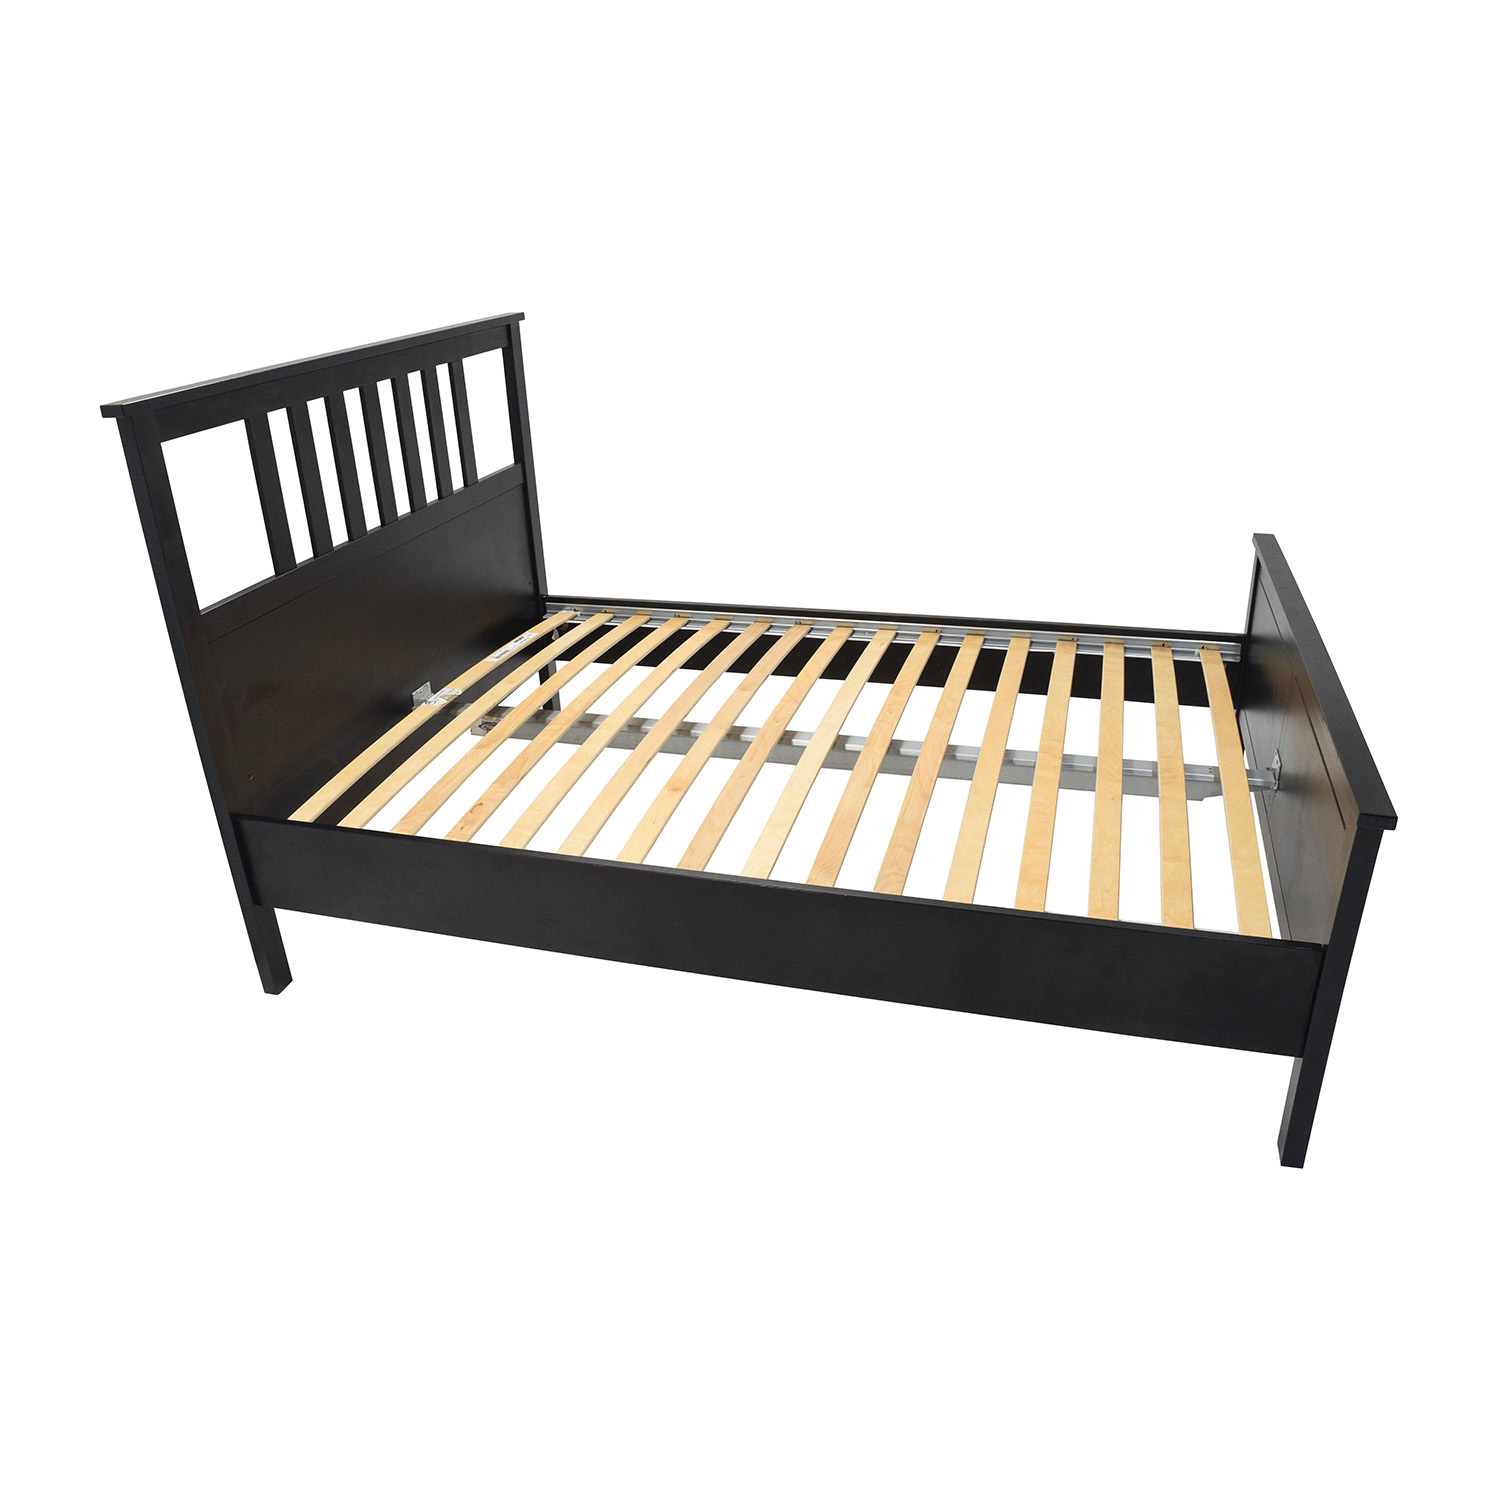 Bed Frames On Sale Toronto